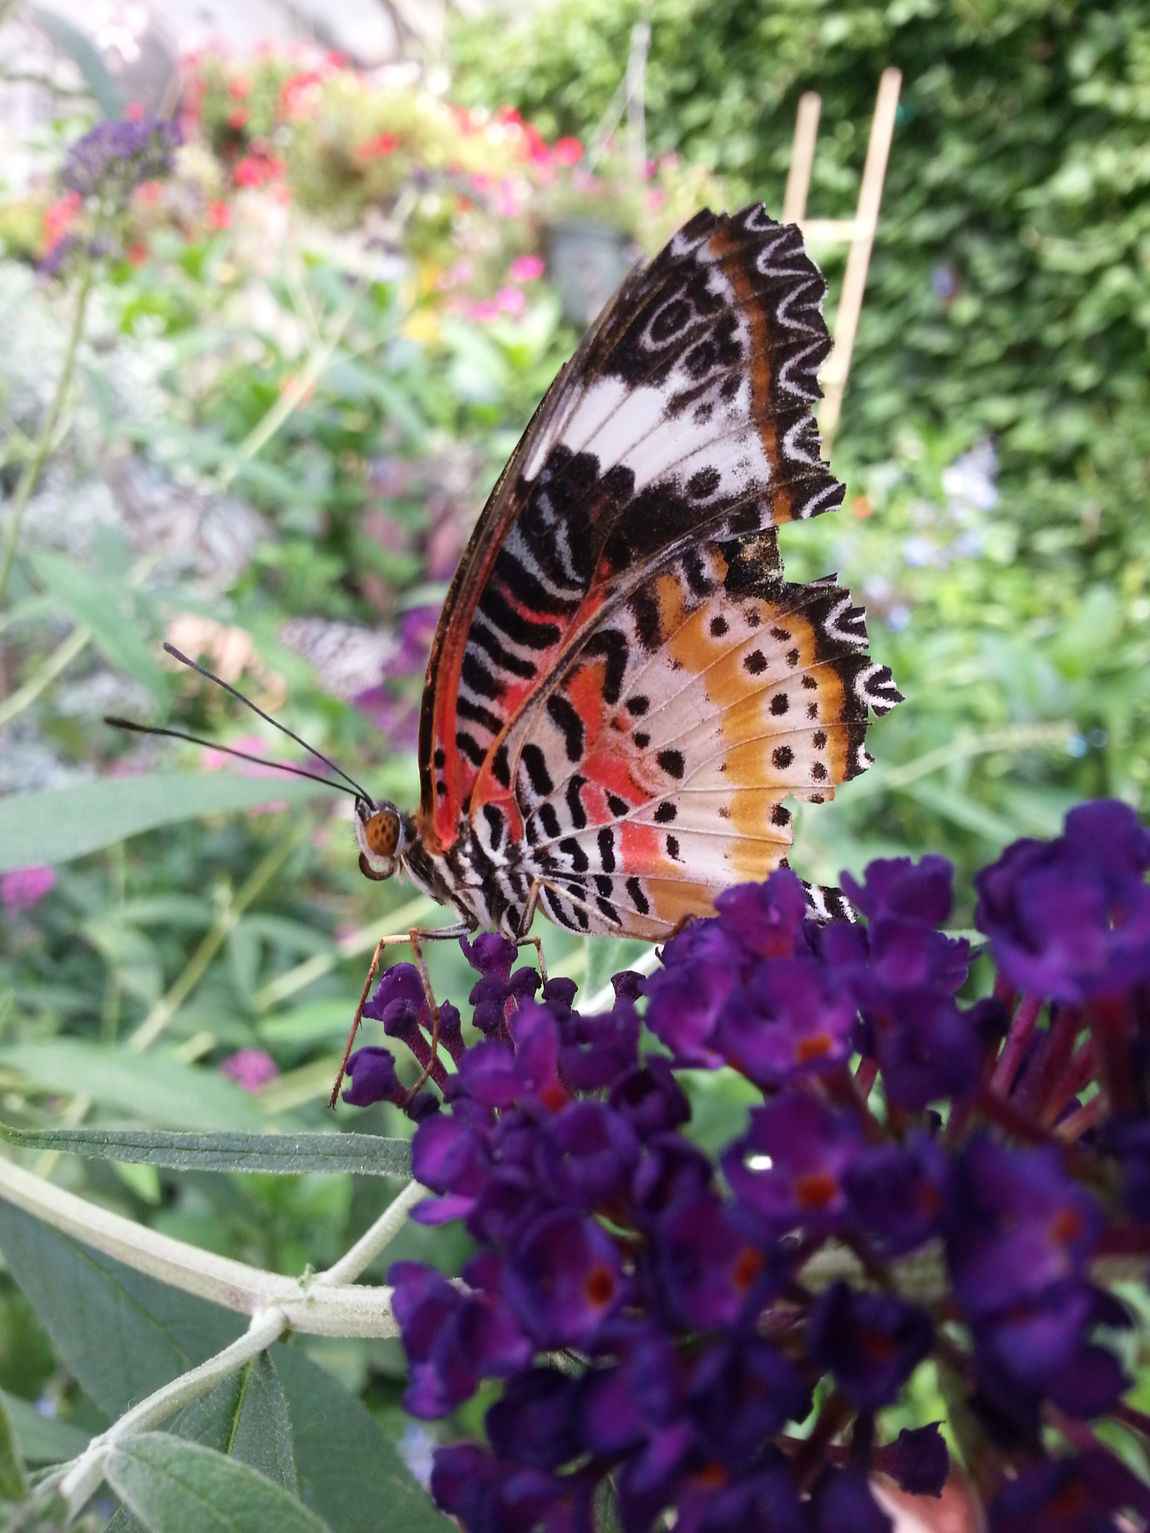 Animal Themes Butterfly Close-up Common Lace Wing Day Flower Focus On Foreground Fragility Freshness Insect Jagged Edge Leaf Nature New Life No People One Animal Orange Color Pink Purple Purple Flower Selective Focus Side View Springtime Stripes Pattern Wing